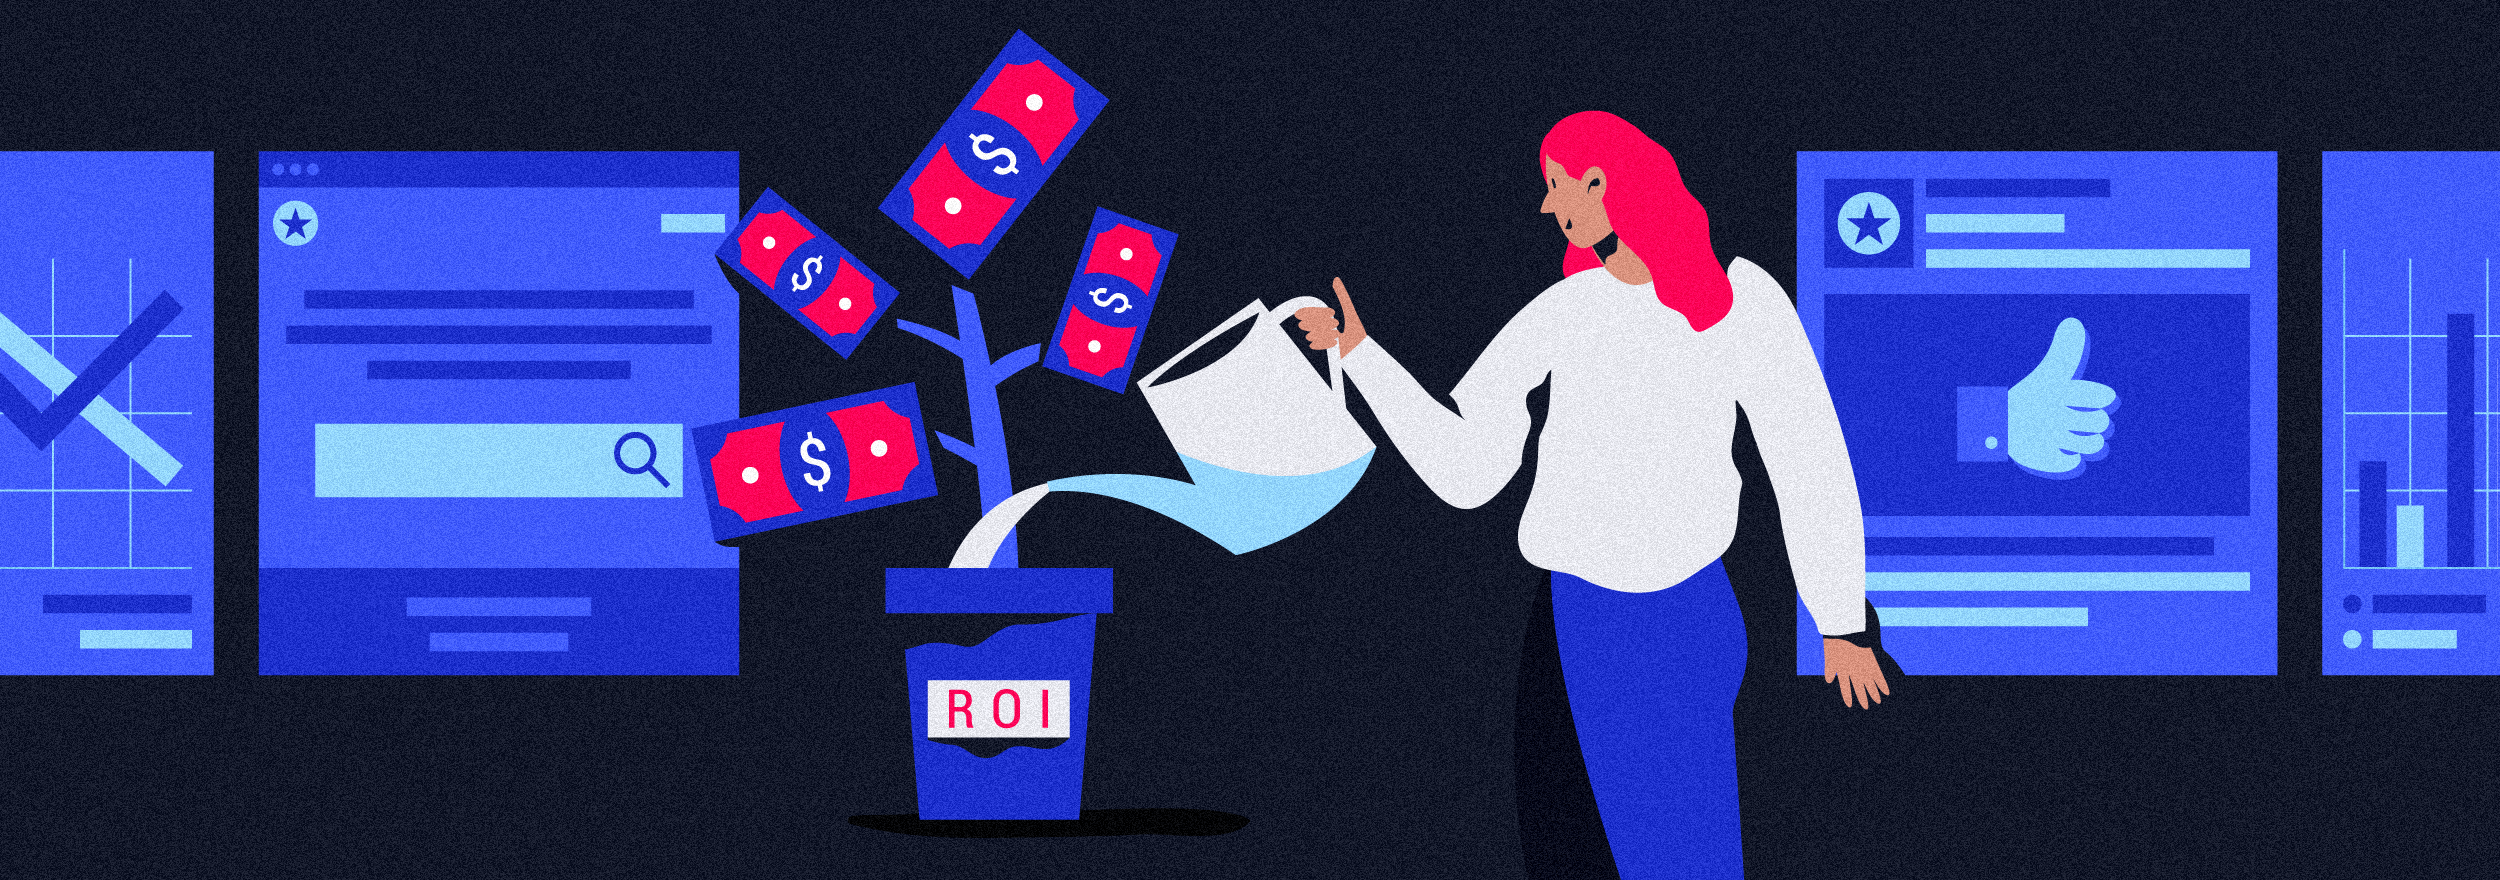 8 advanced remarketing strategies to triple your ROI